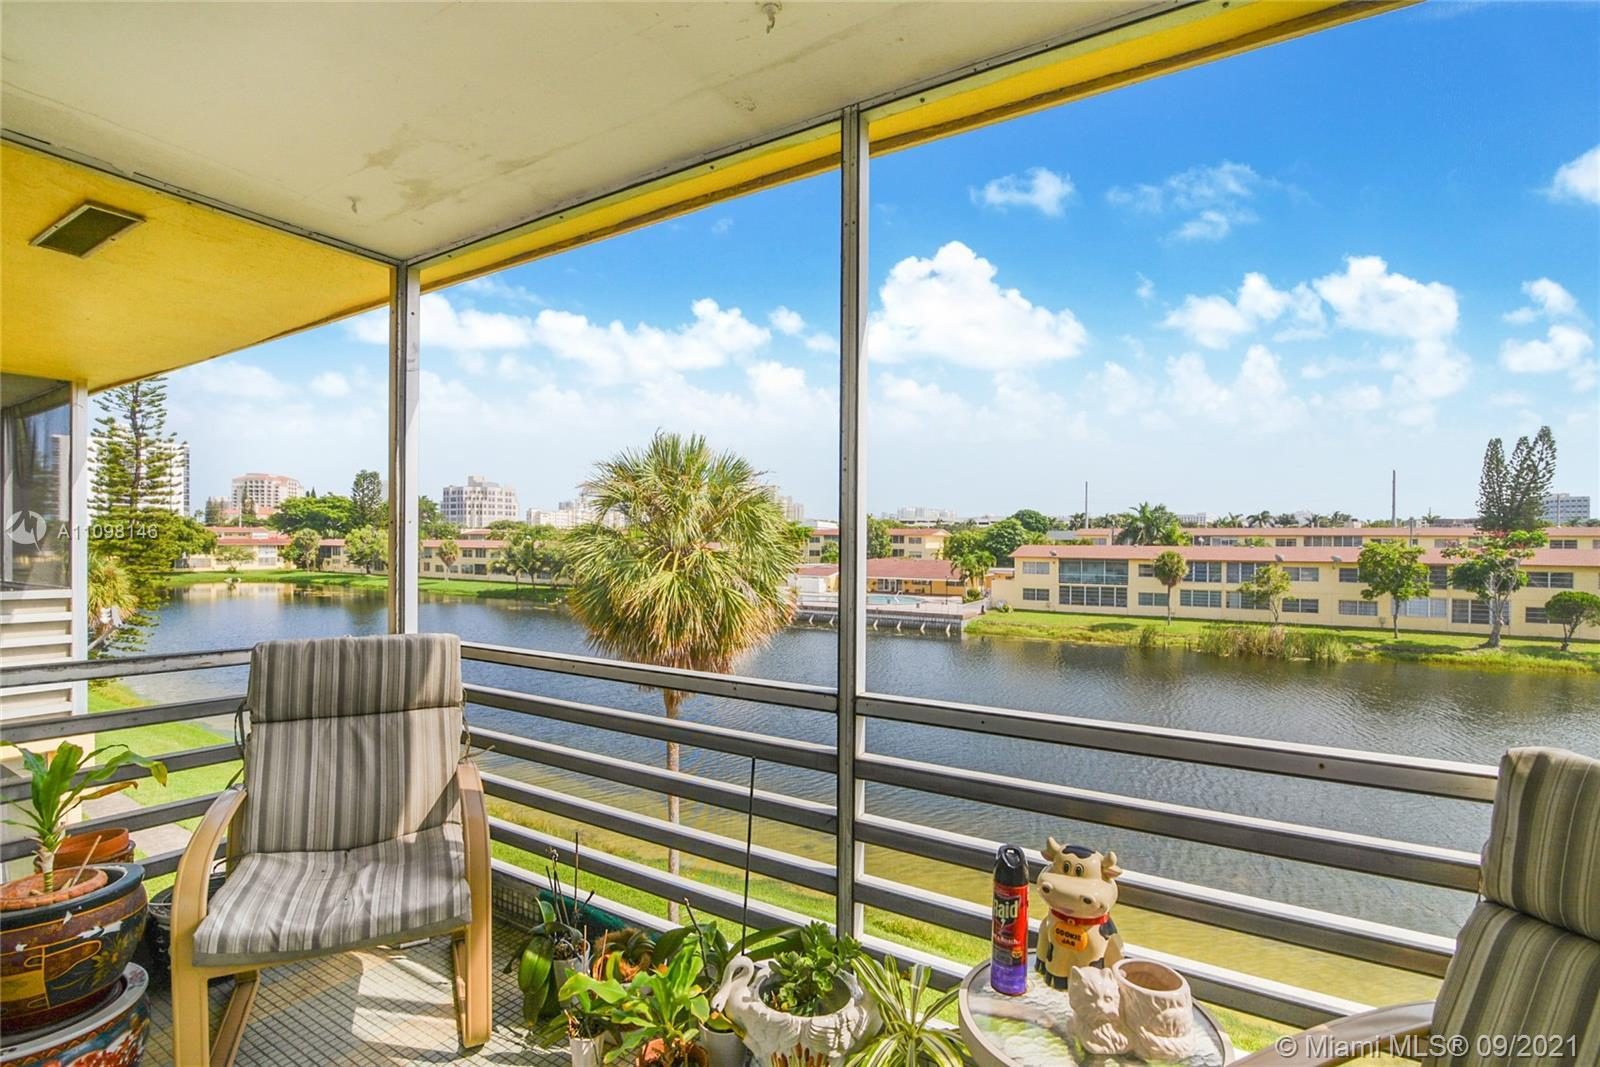 Best location and best deal in the heart of Aventura. This one bedroom, one bath quaint yet spacious